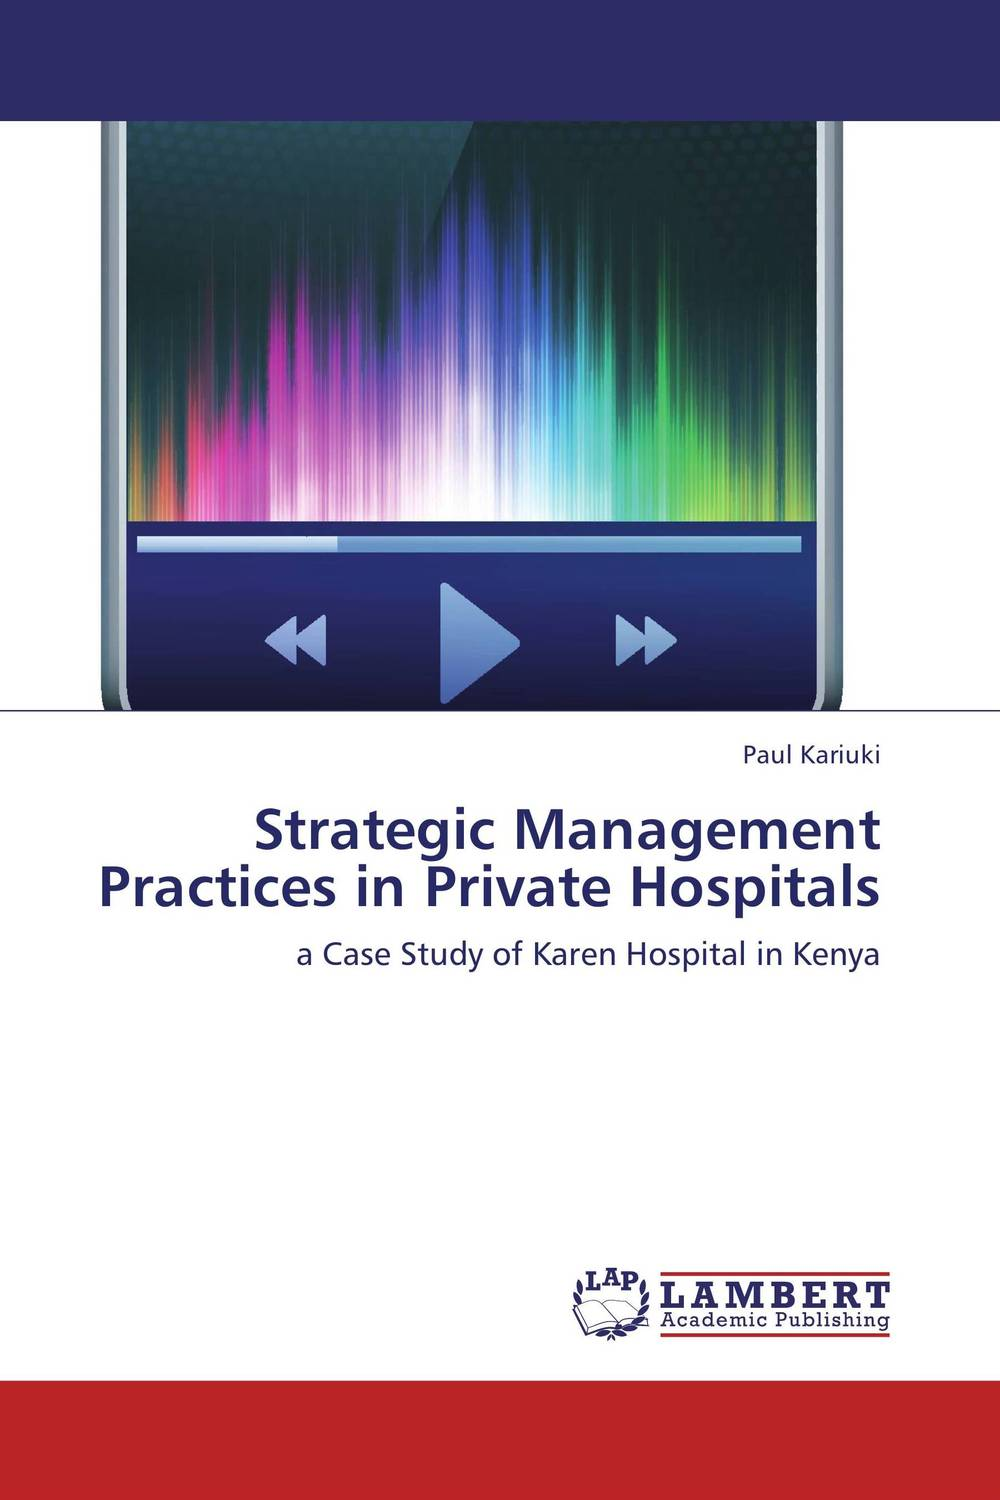 Strategic Management Practices in Private Hospitals implementation of strategic plans